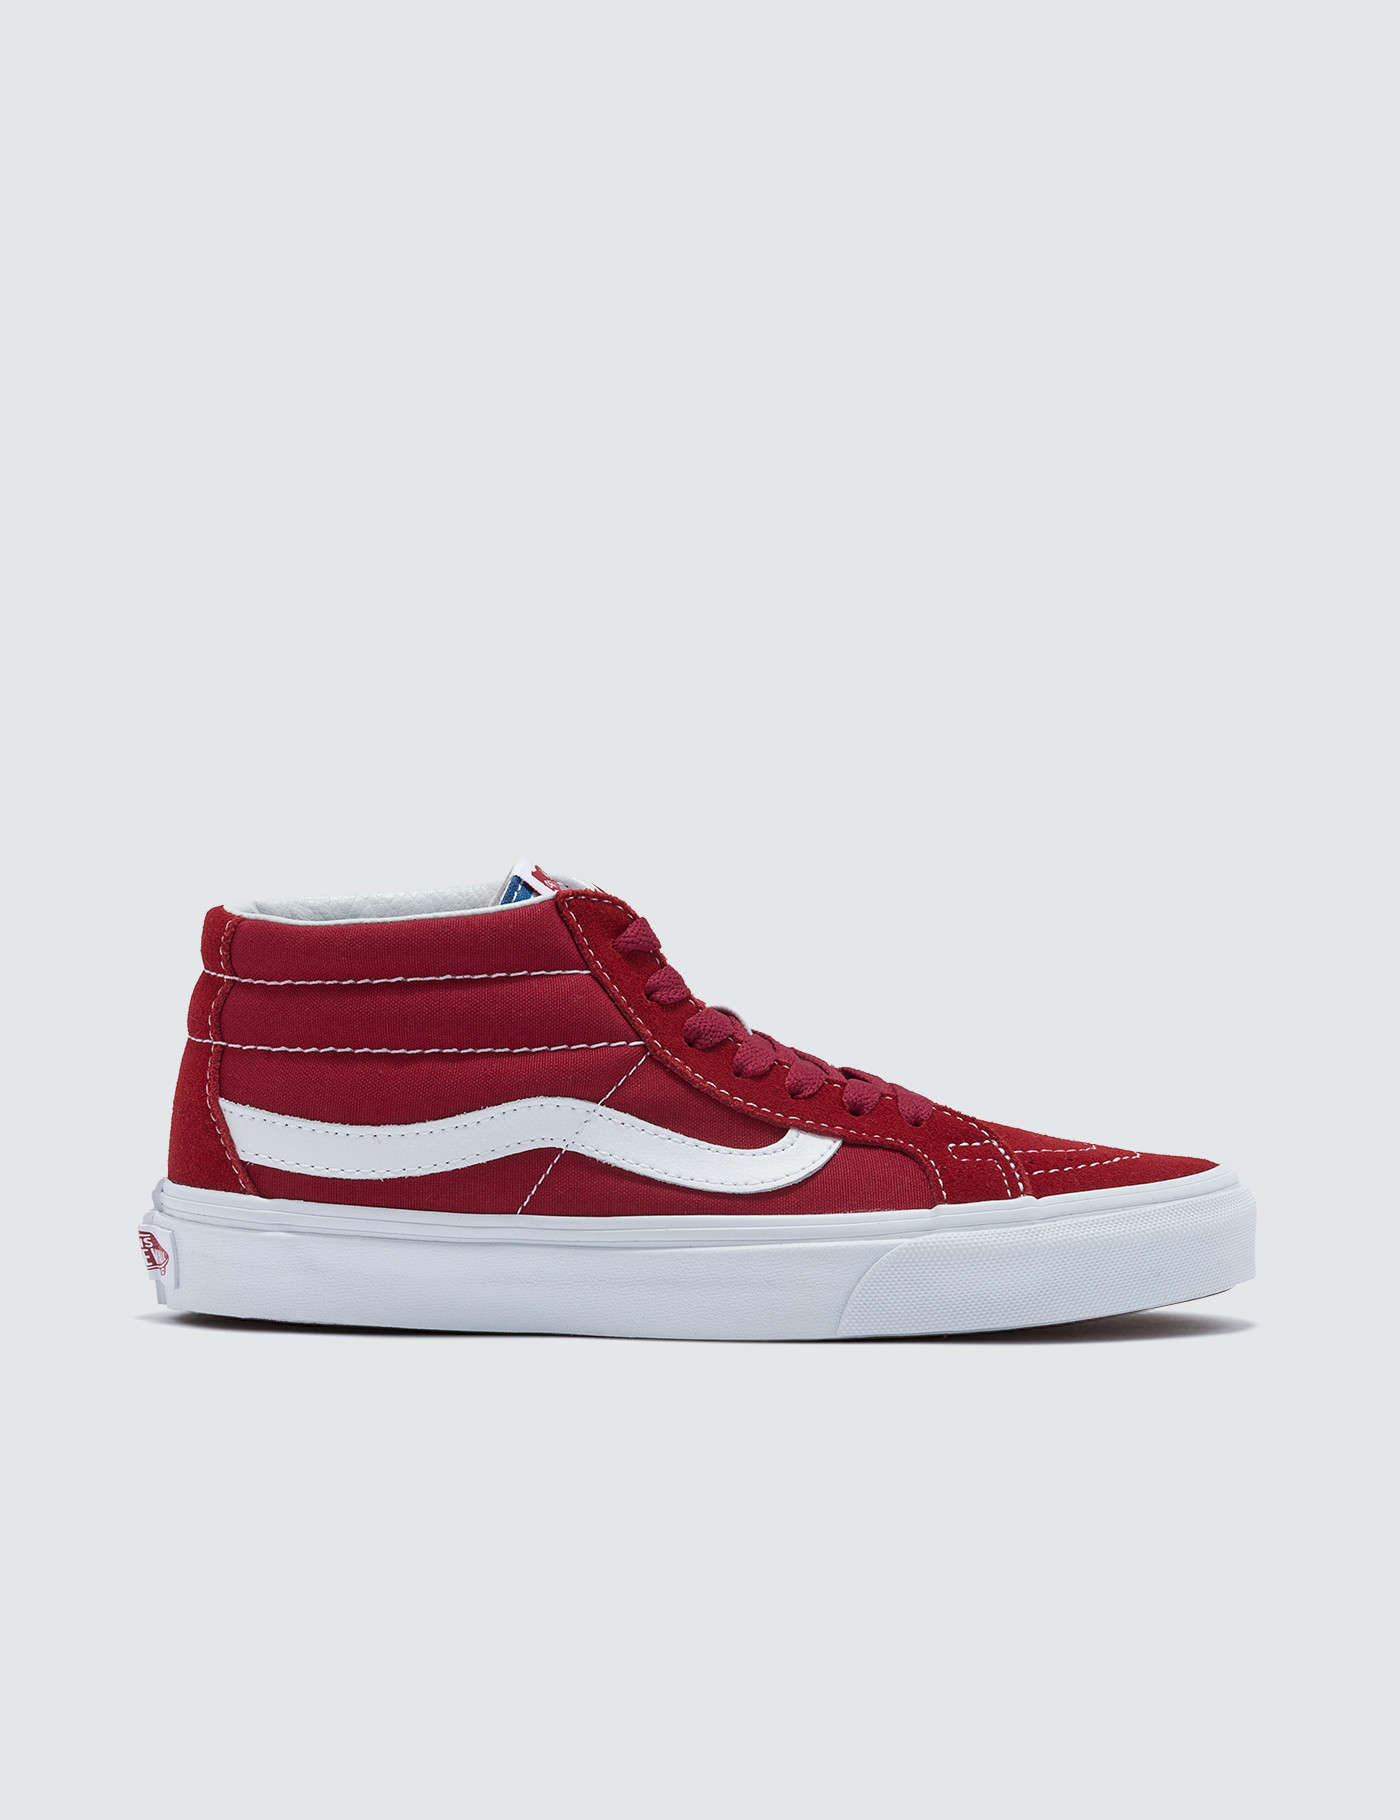 hottest sale discount coupon great deals Sk8-mid Reissue, Vans